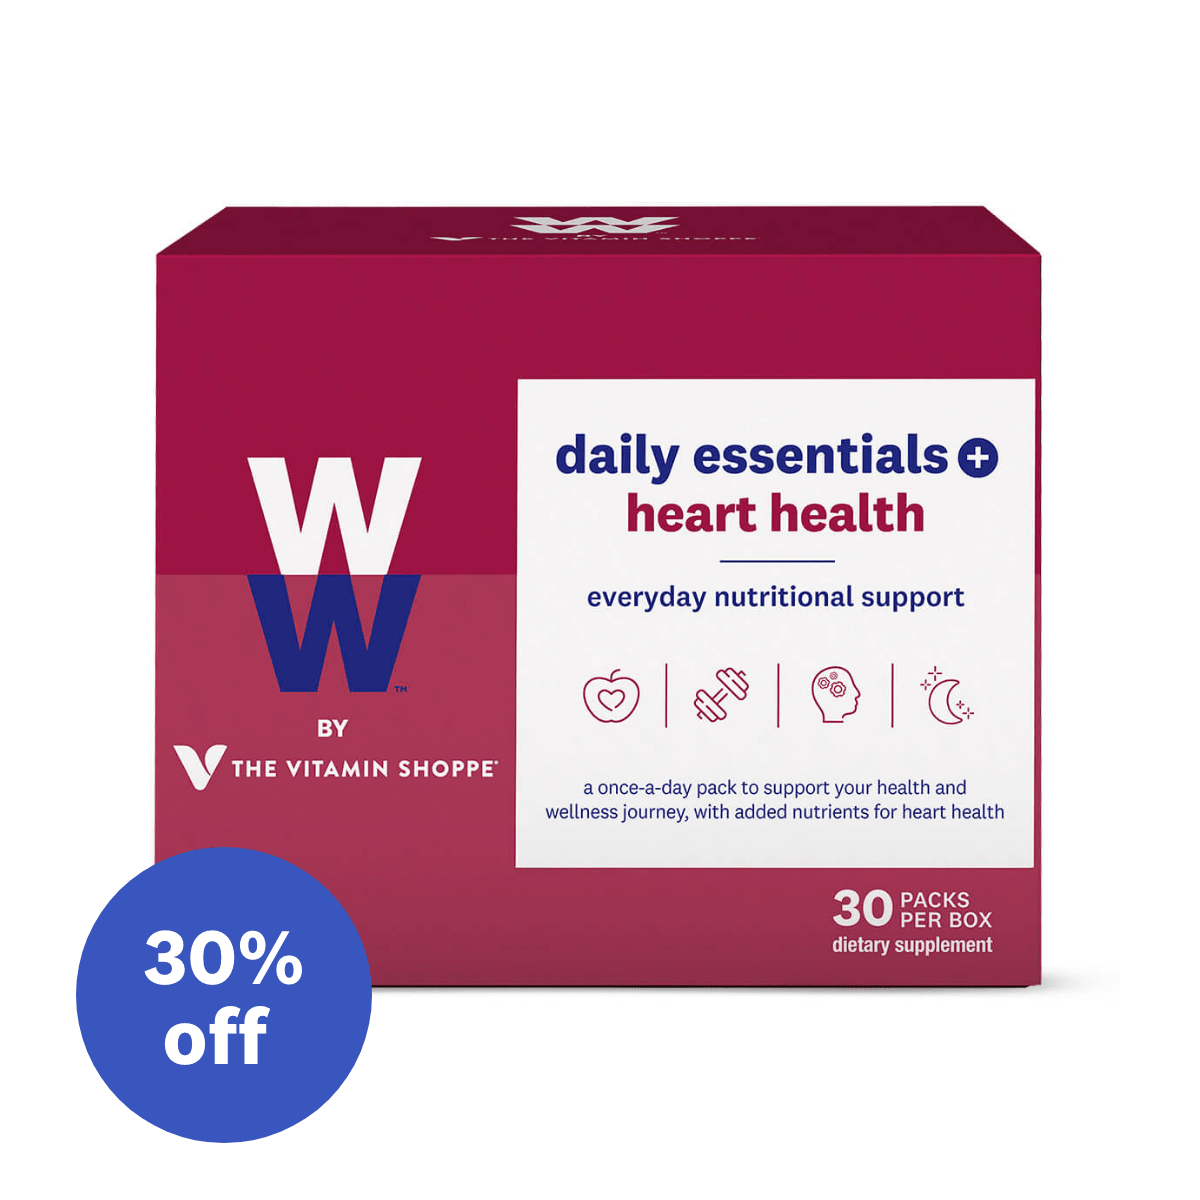 WW by the Vitamin Shoppe Daily Essentials Heart Health - sale image